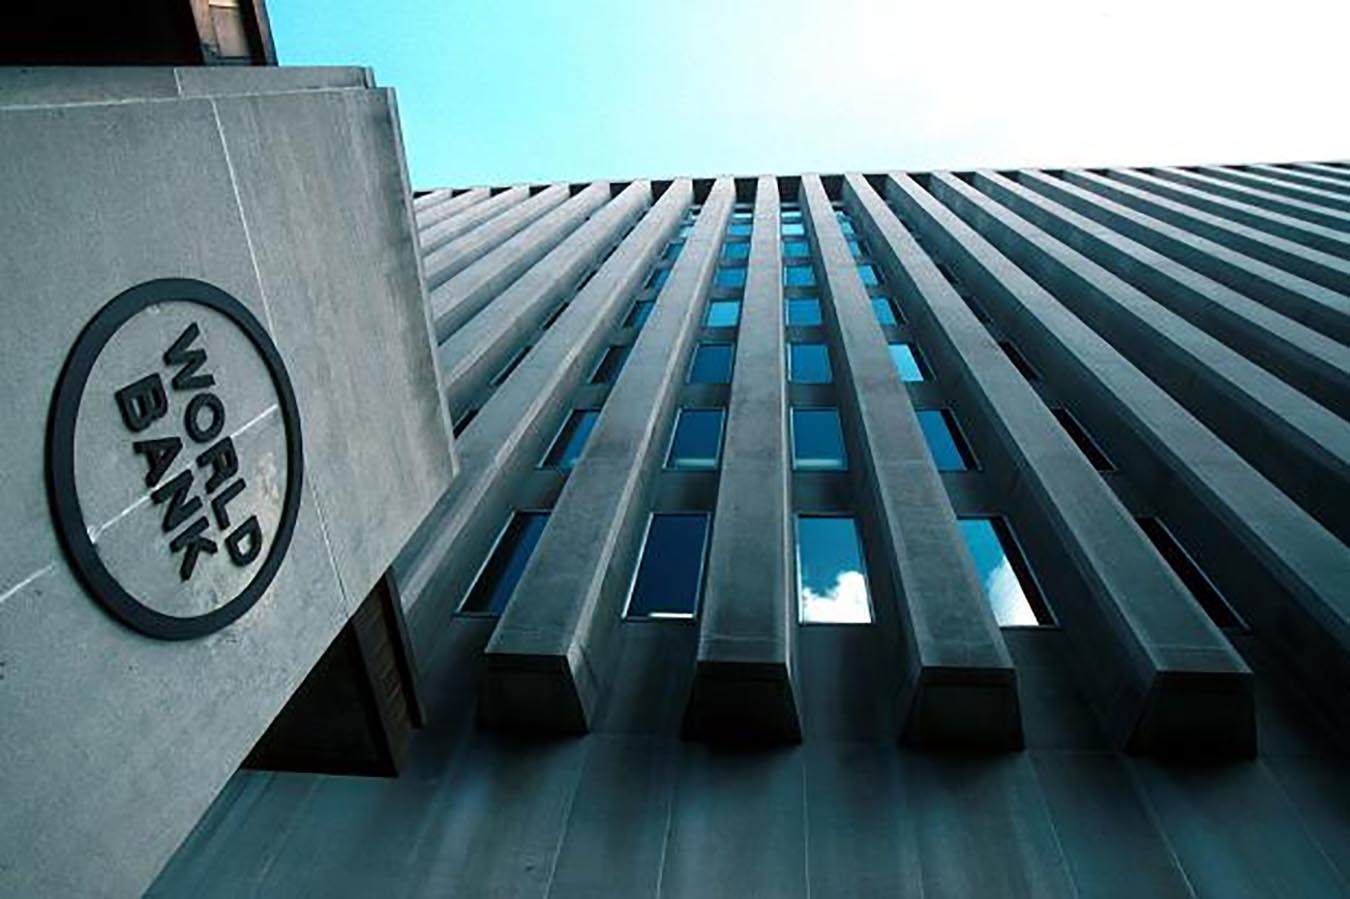 funding by bank 039 s private financing arm violates its own guidelines on environmental social conditions photo reuters